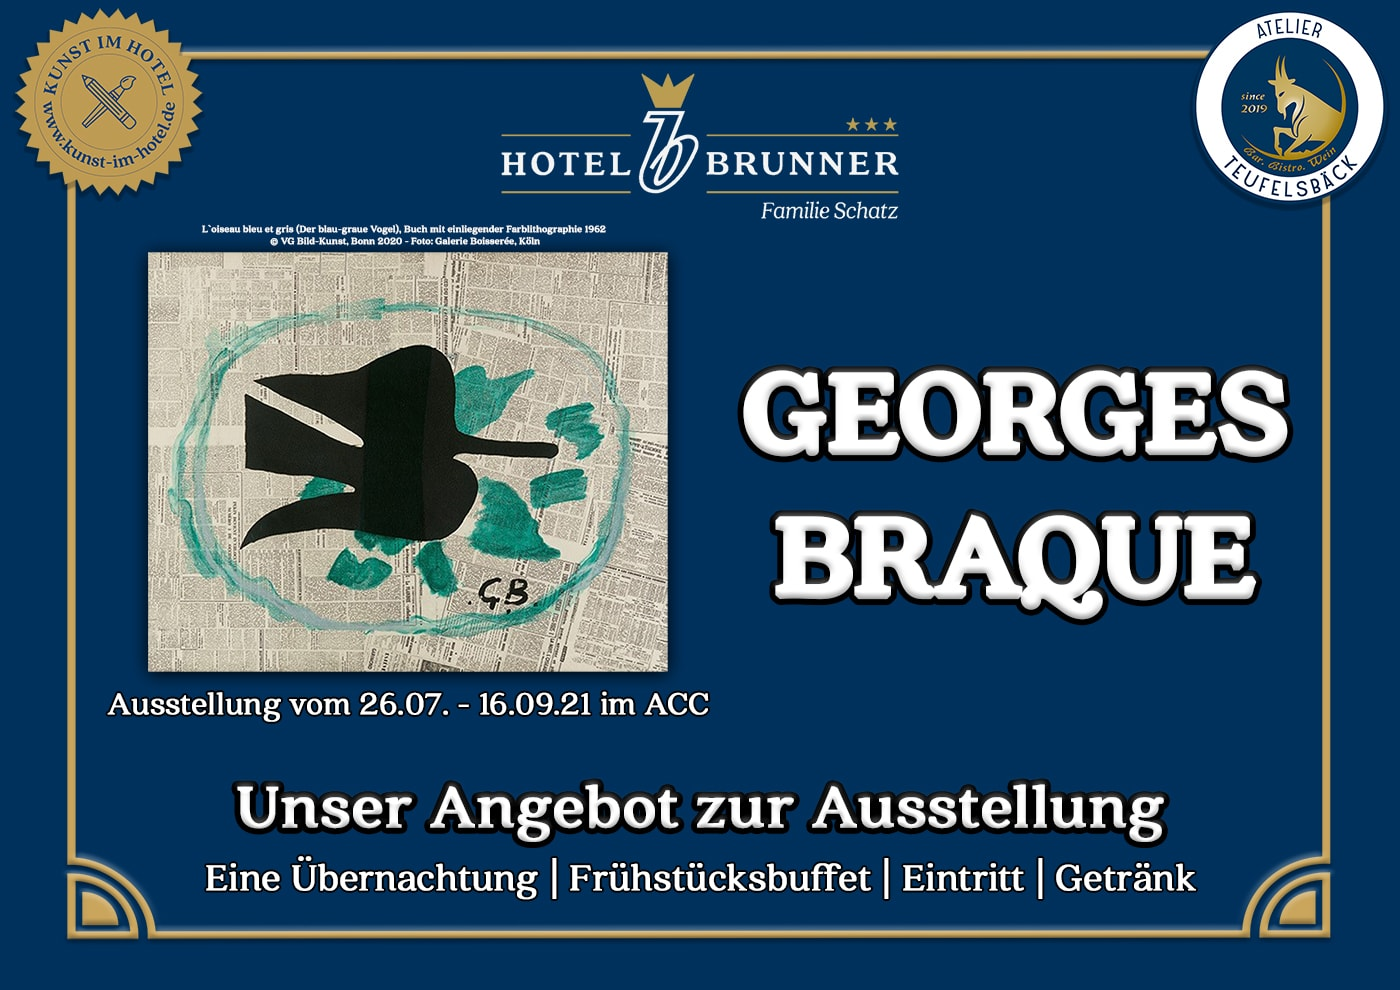 Teaser image of the offer for the exhibition of Georges Braque